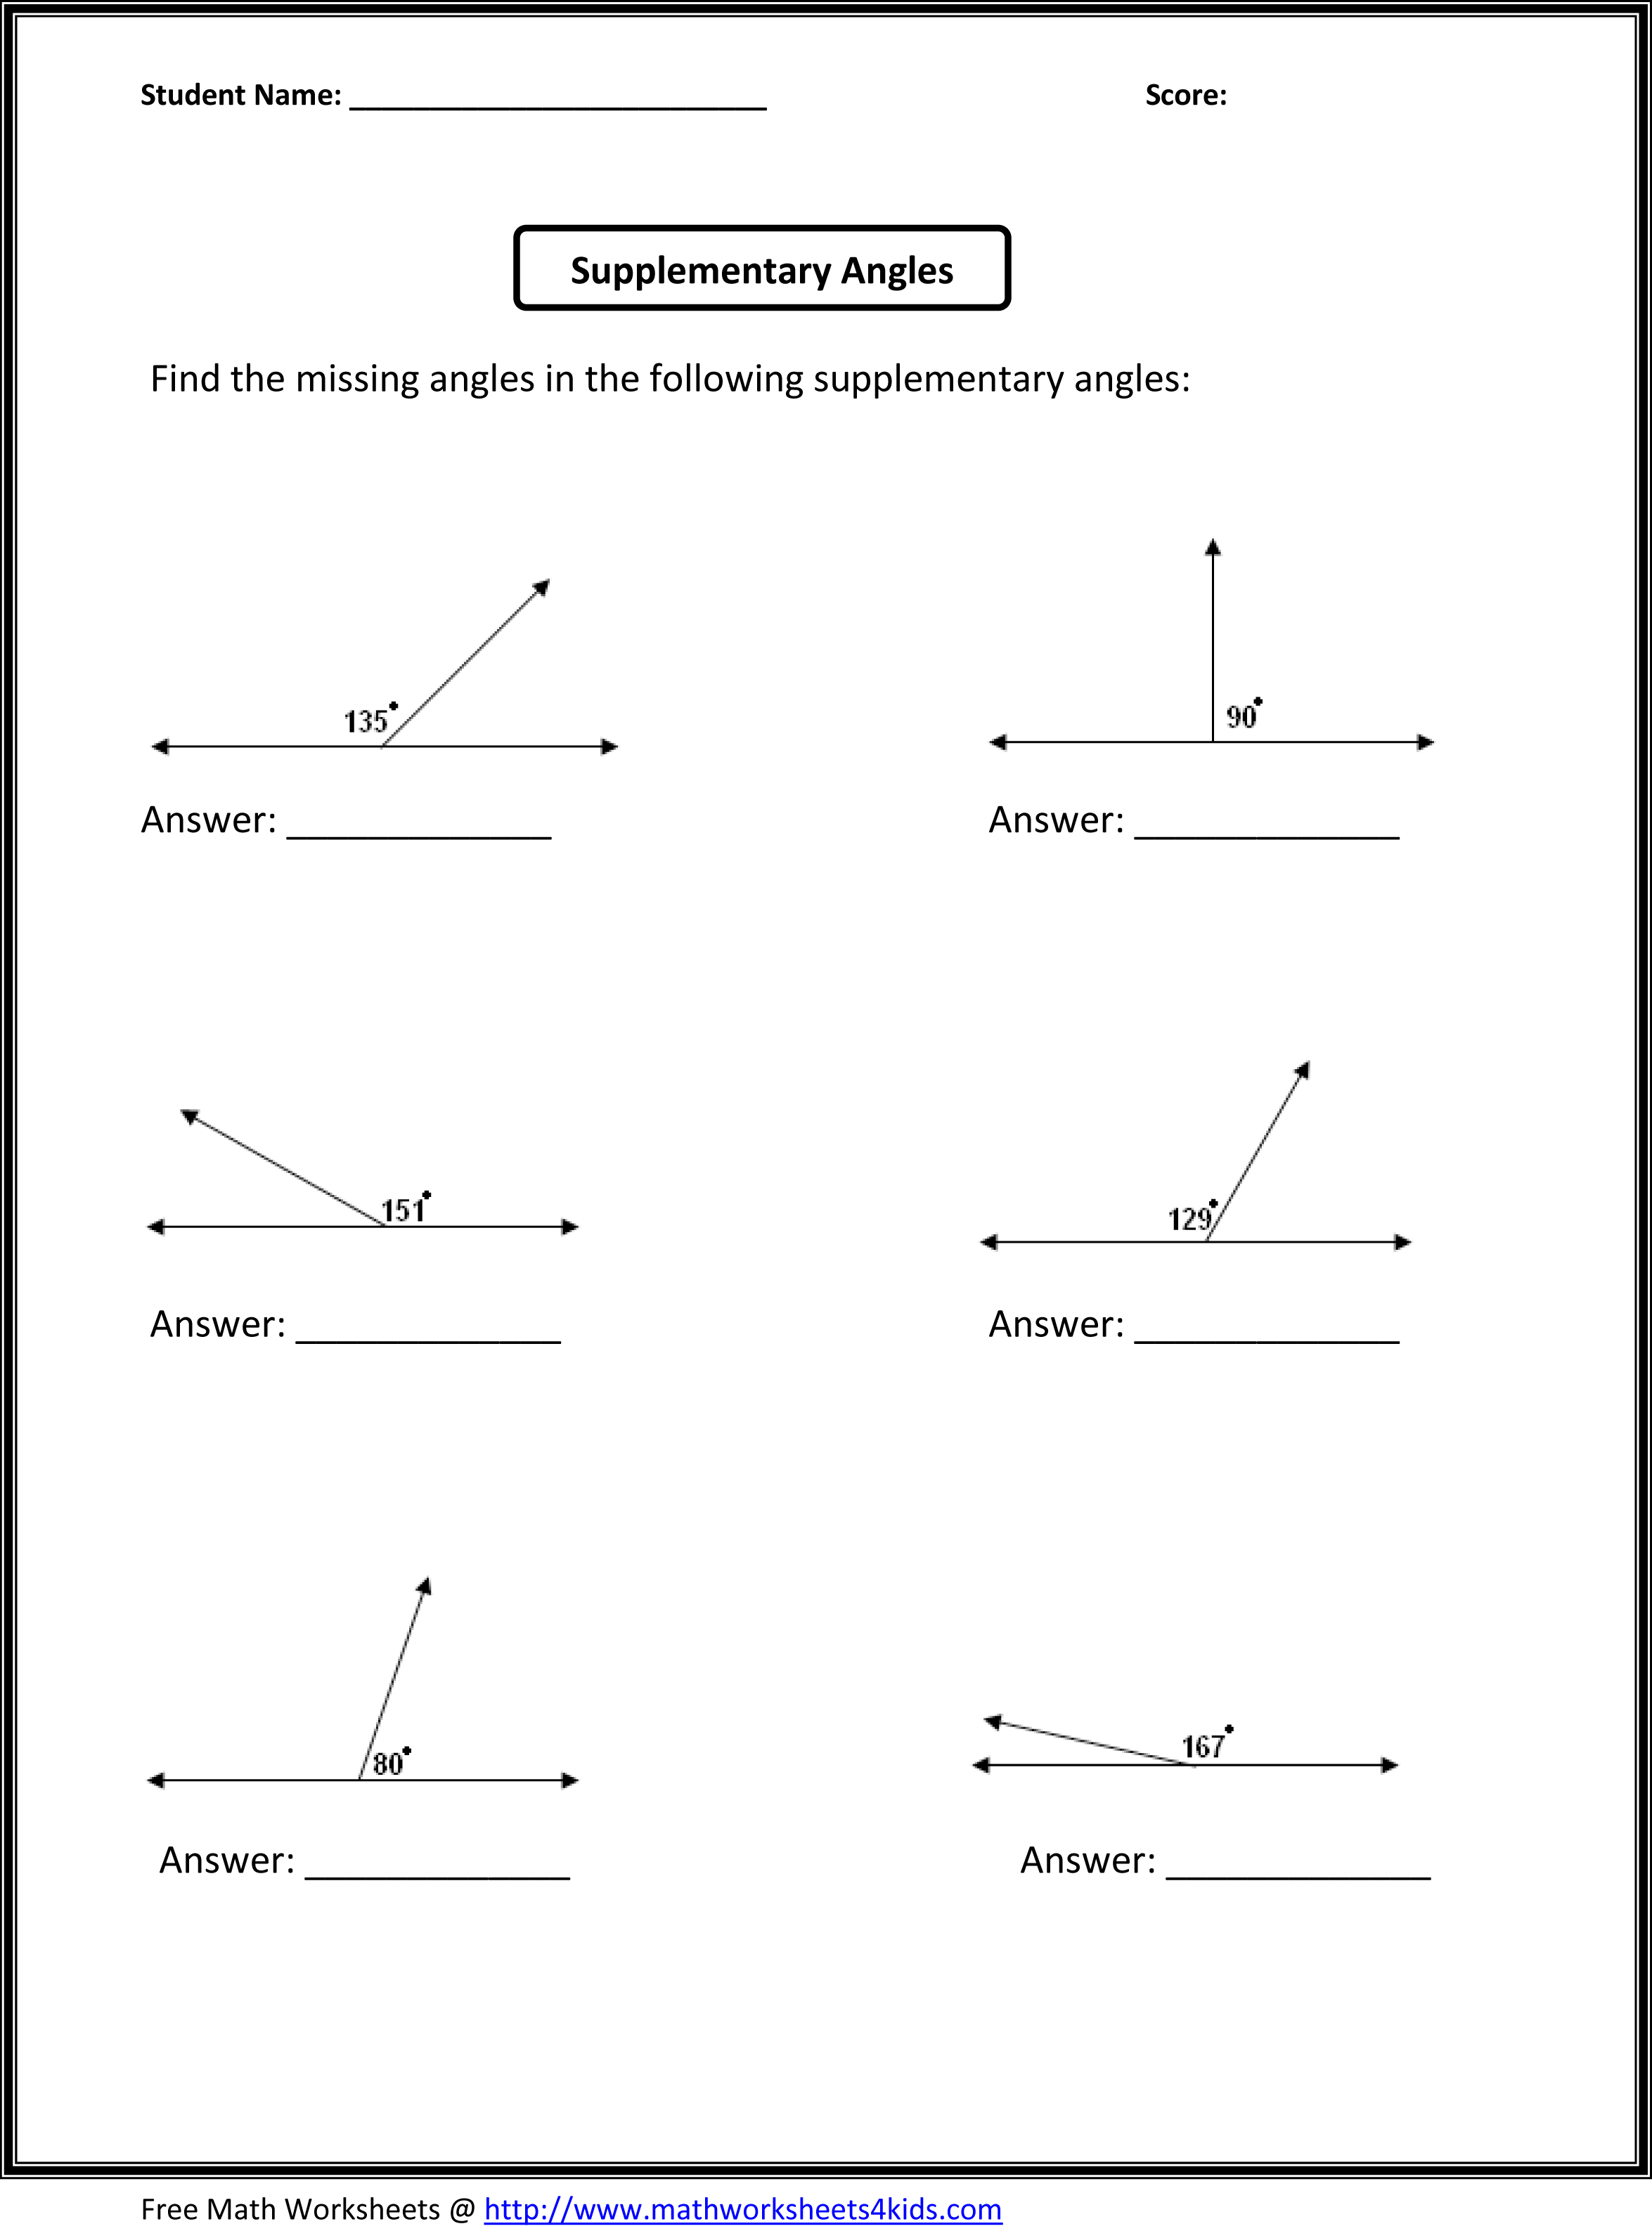 Printables 6th Grade Math Worksheets Algebra 6th grade math worksheets online christmas for value absolute based on basic math